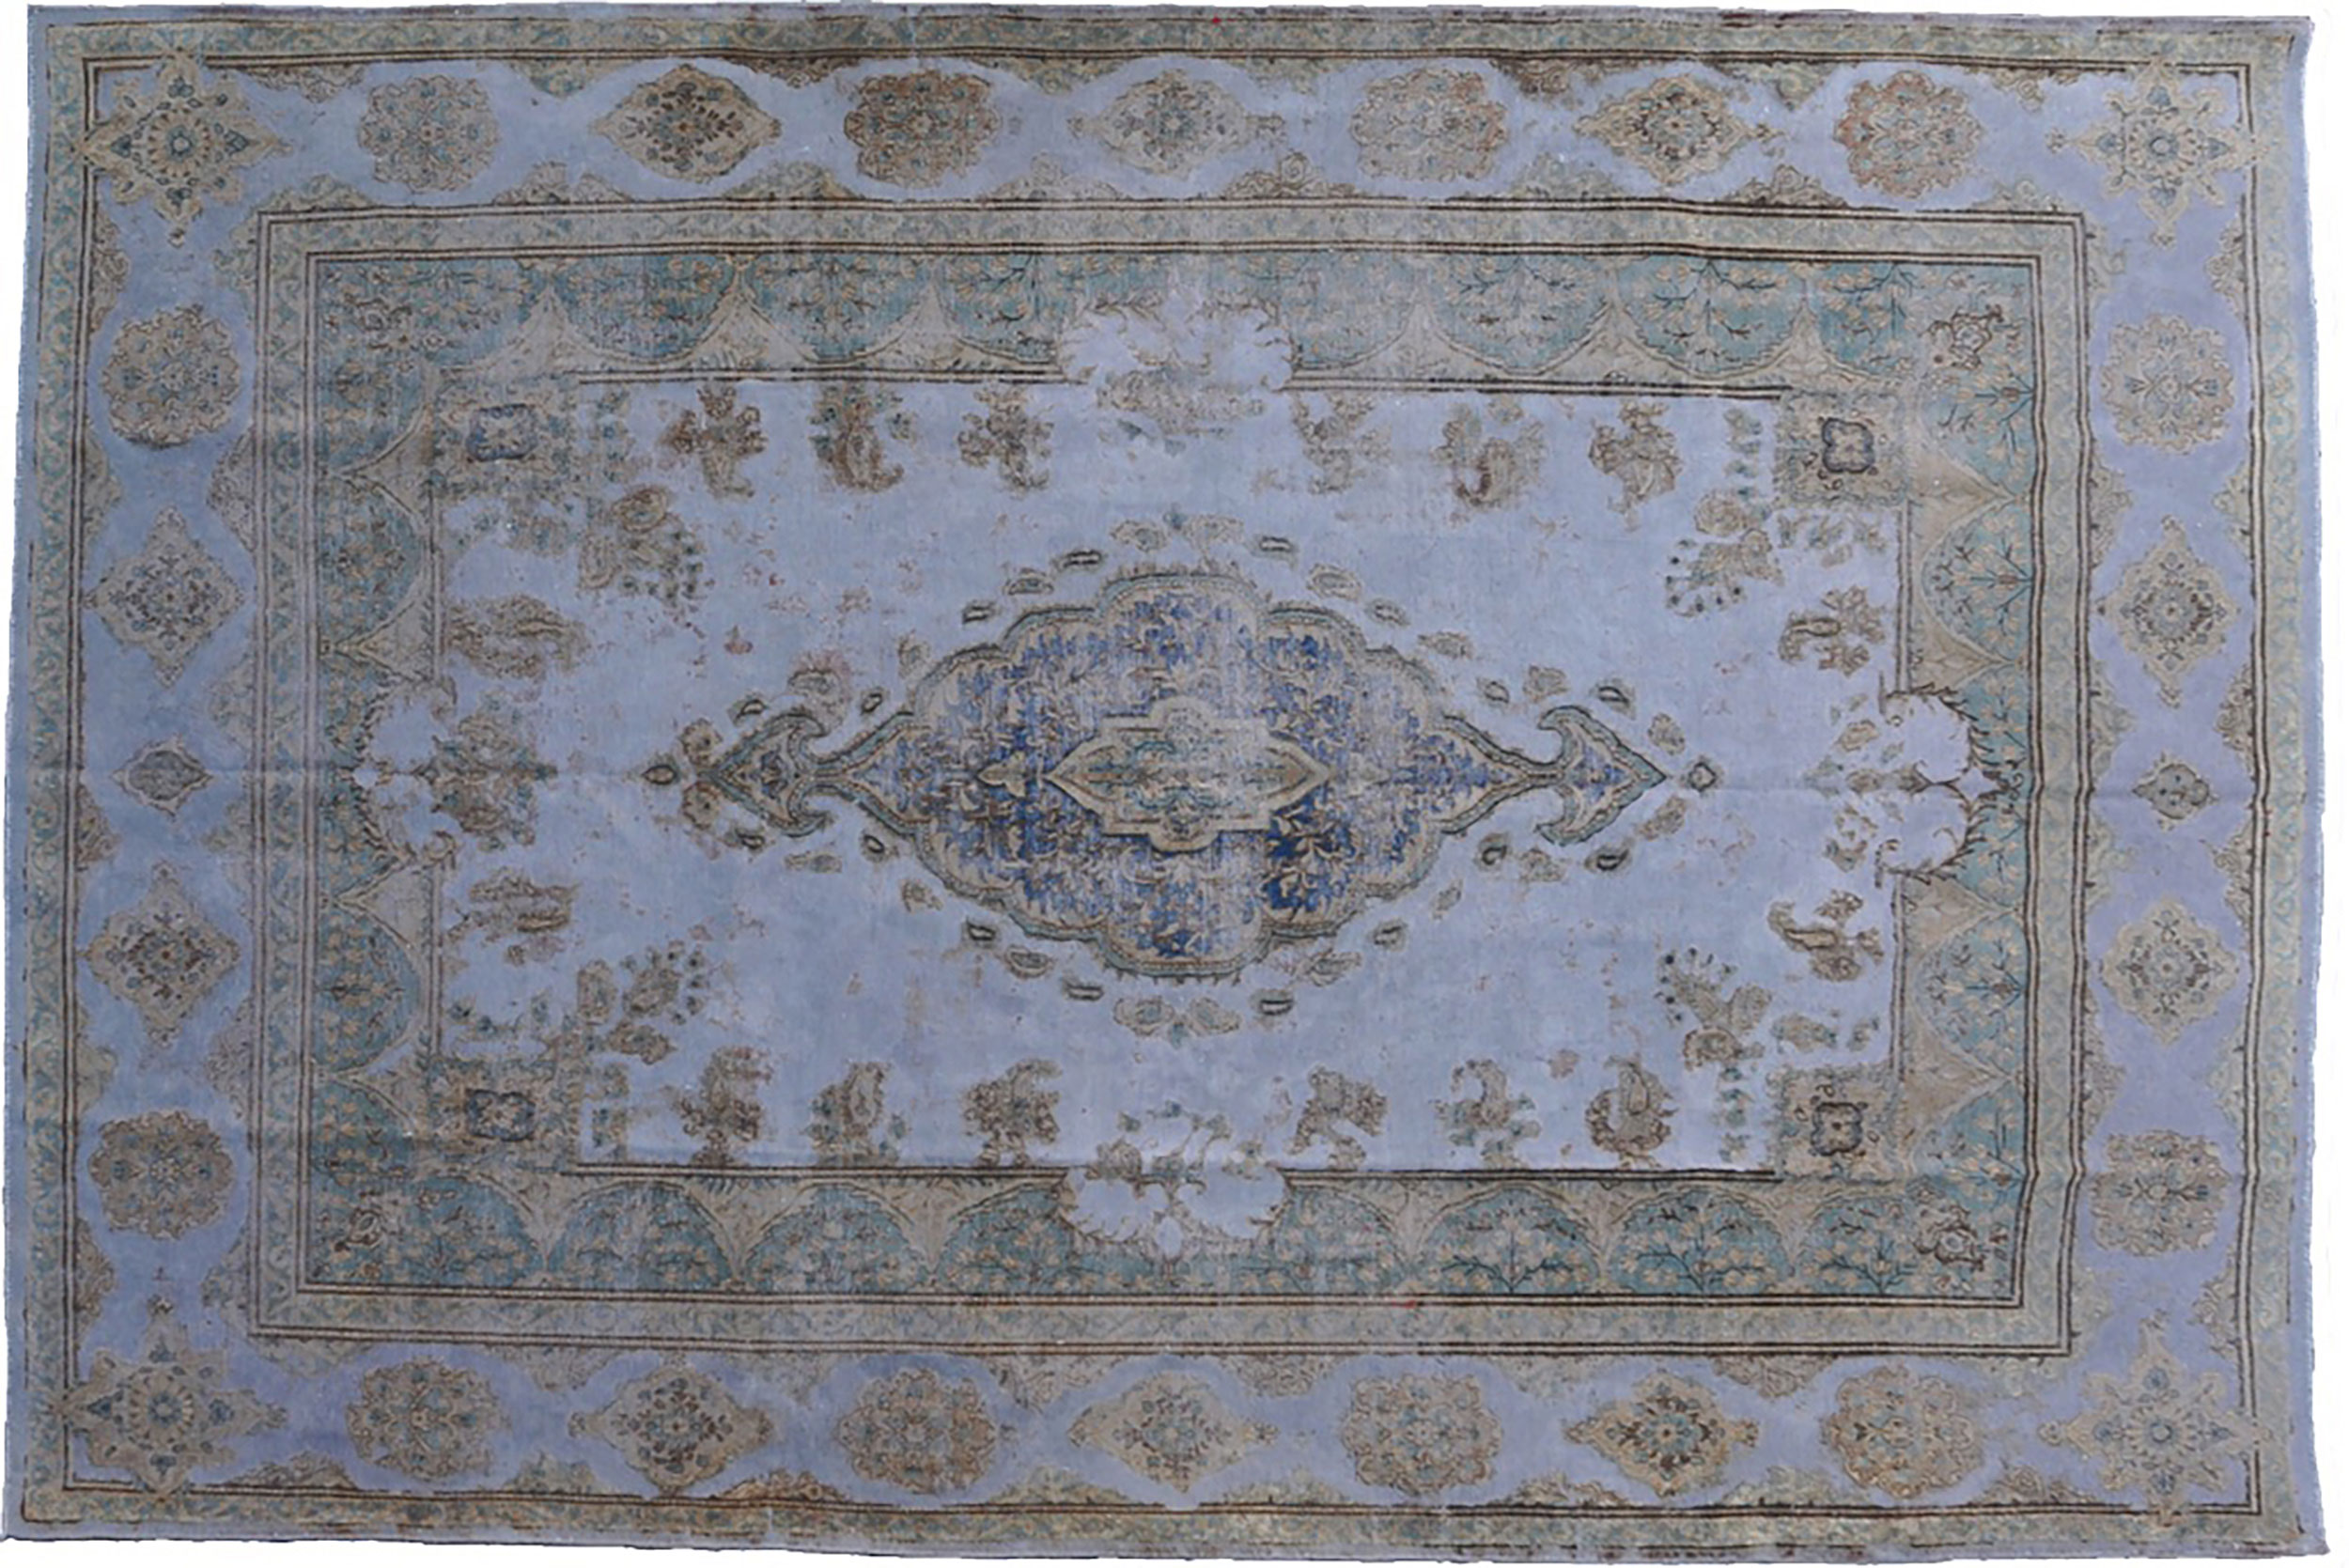 Retro Chic Carpet 385x290cm